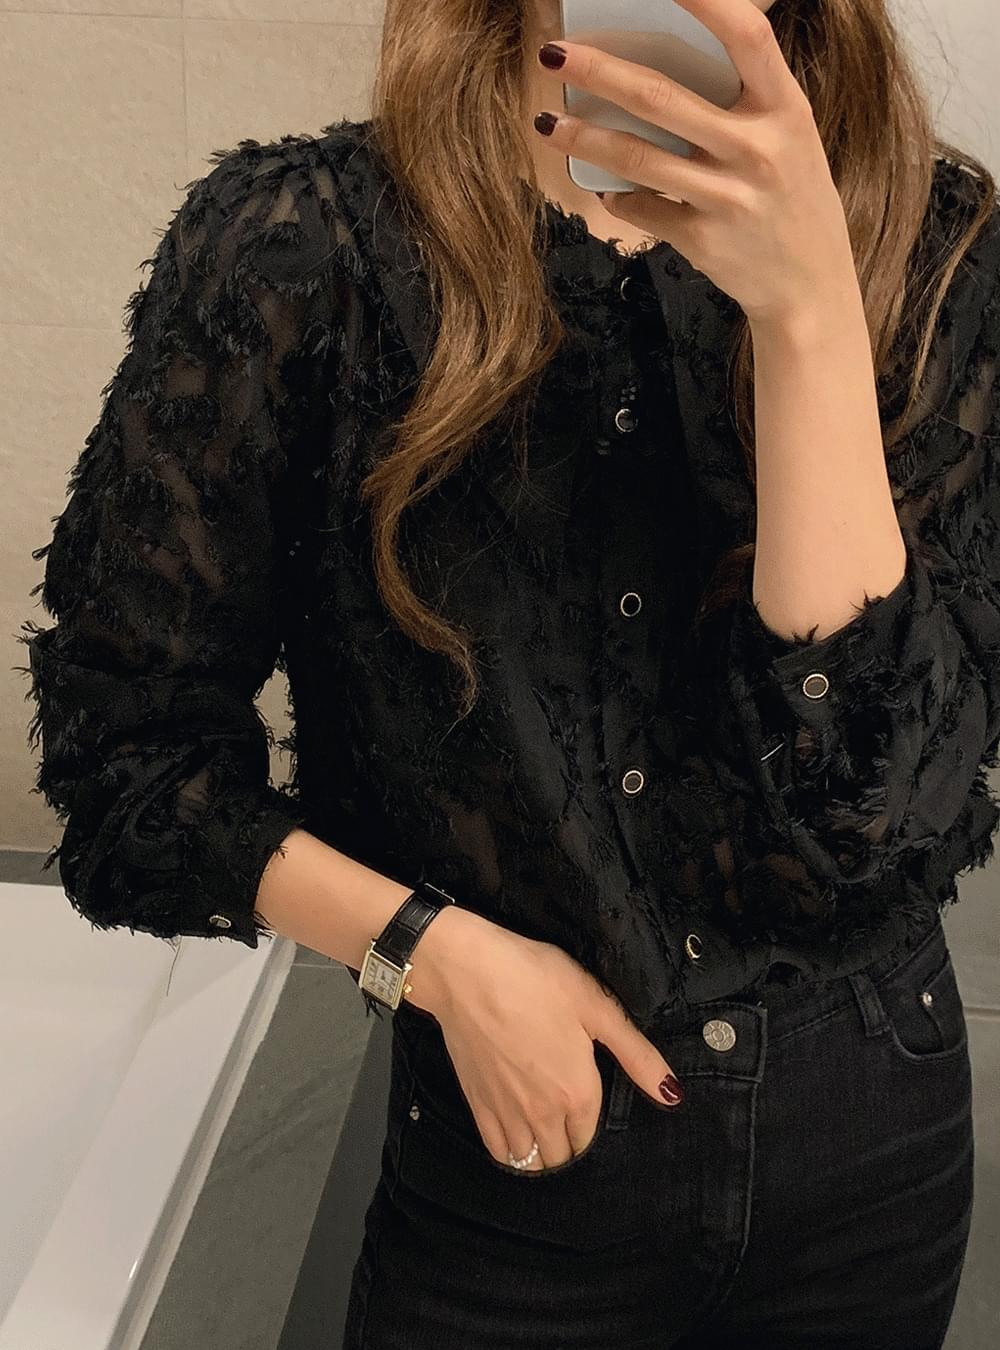 My-littleclassic/ Wide collar feather blouse